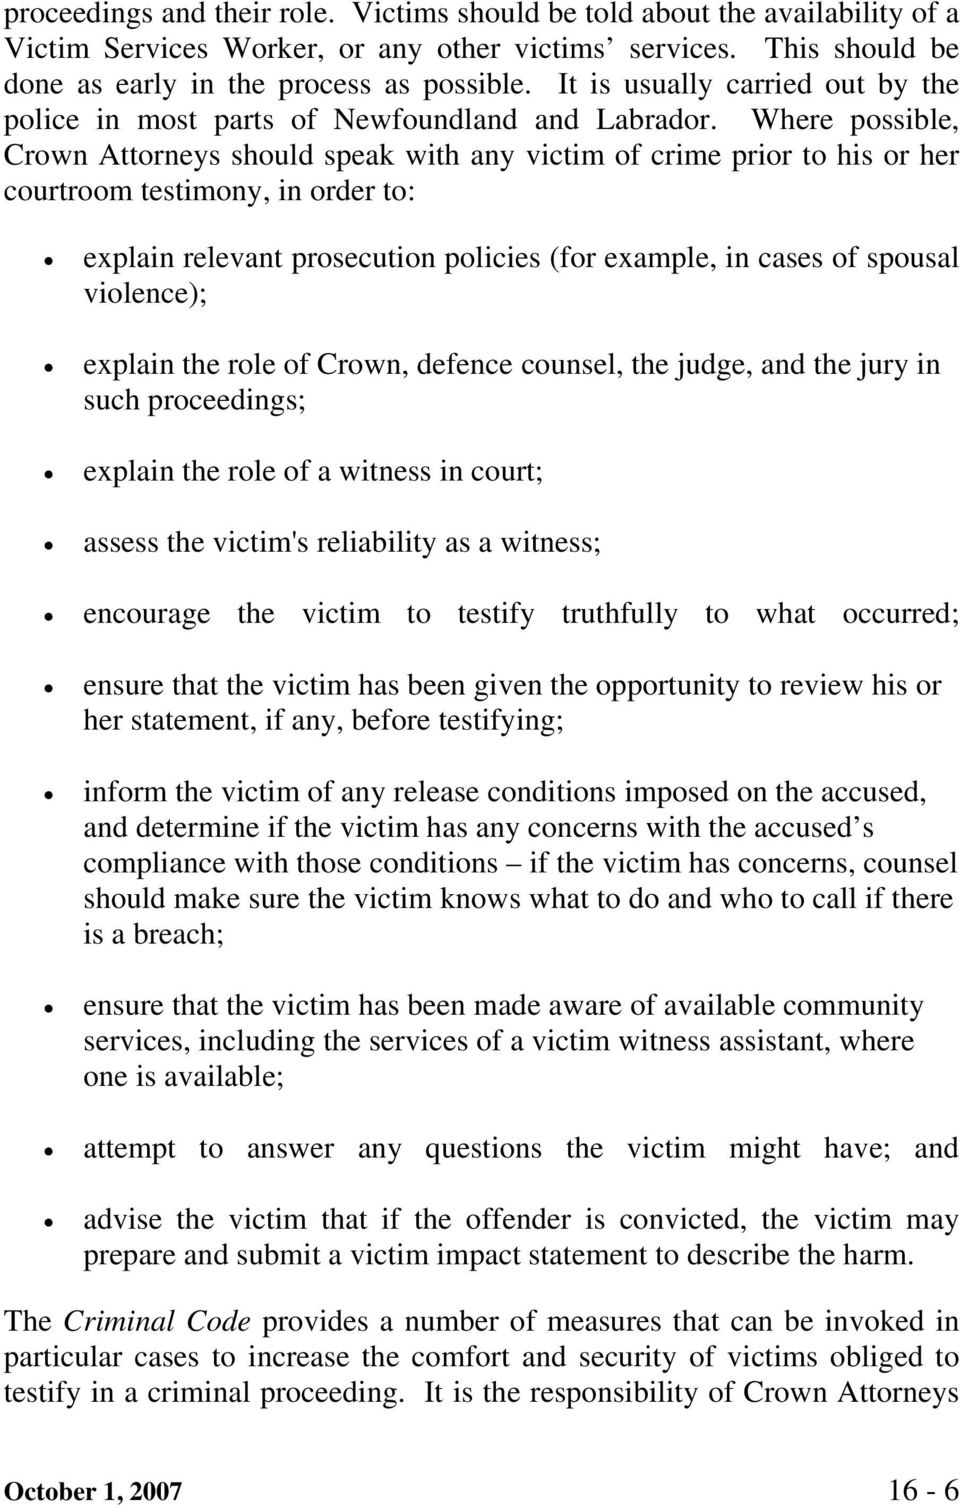 Where possible, Crown Attorneys should speak with any victim of crime prior to his or her courtroom testimony, in order to: explain relevant prosecution policies (for example, in cases of spousal